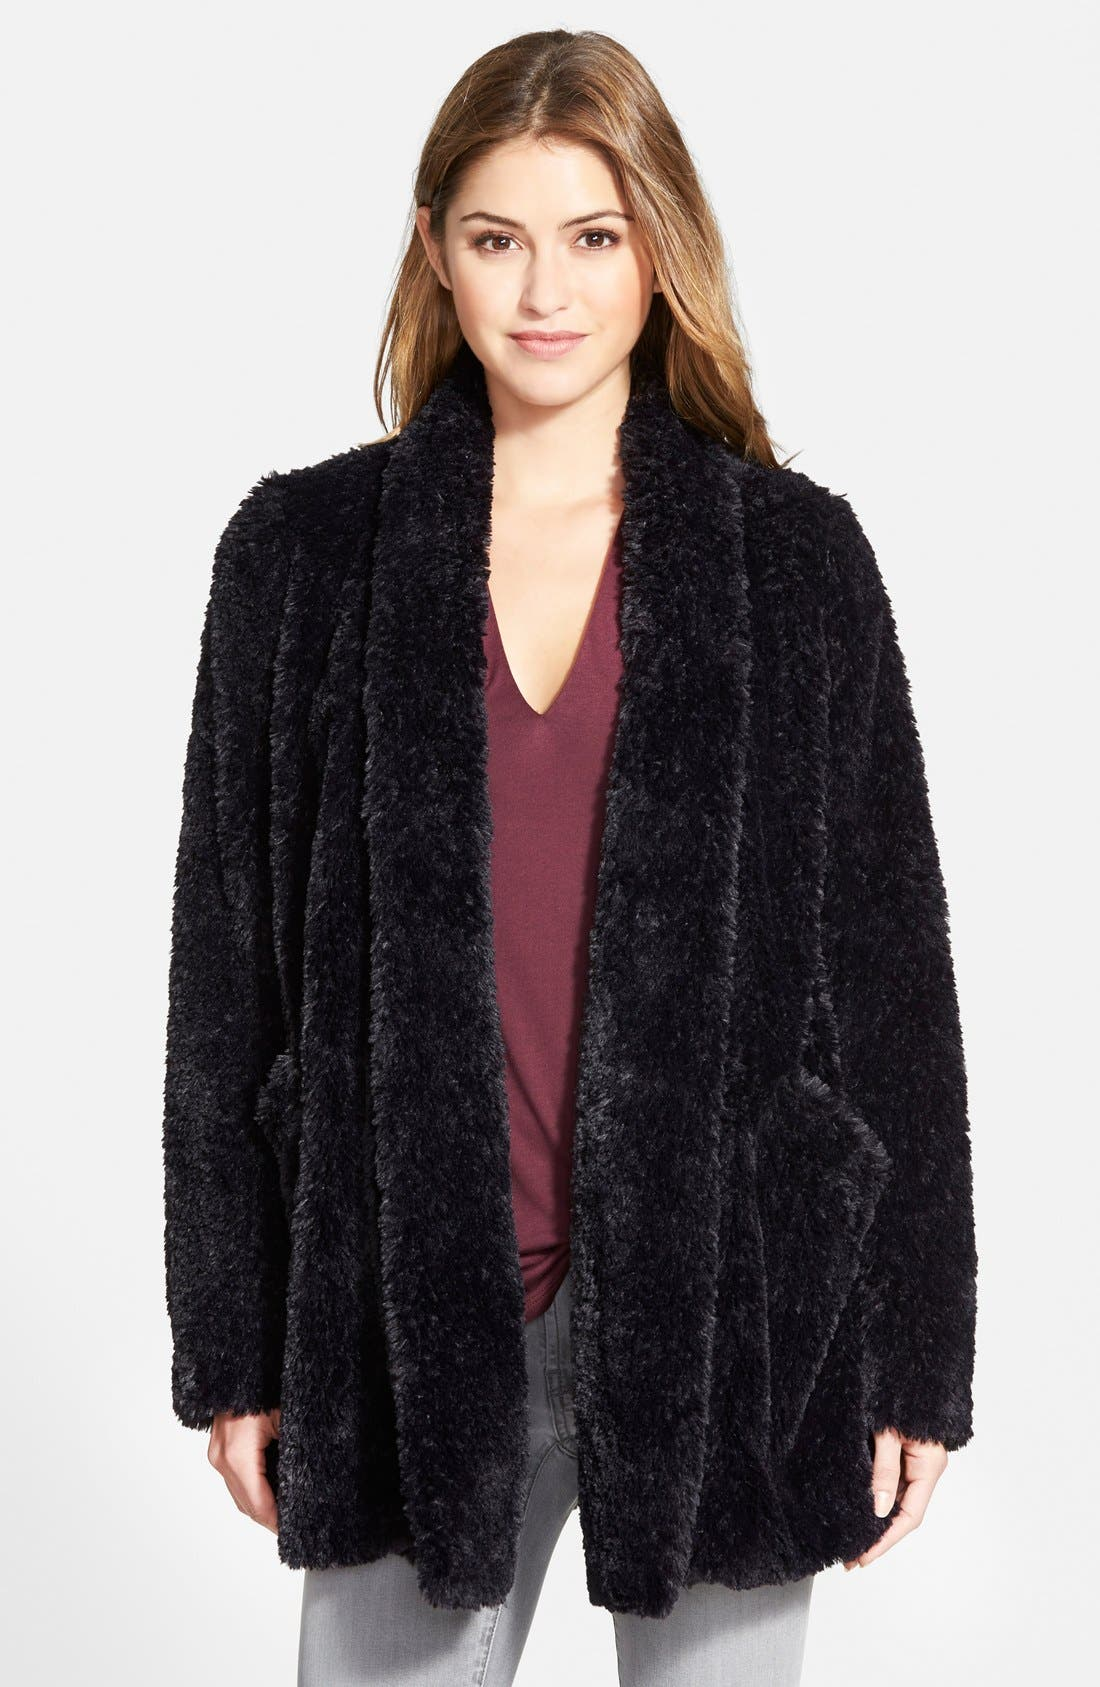 Main Image - Kenneth Cole New York 'Teddy Bear' Faux Fur Clutch Coat